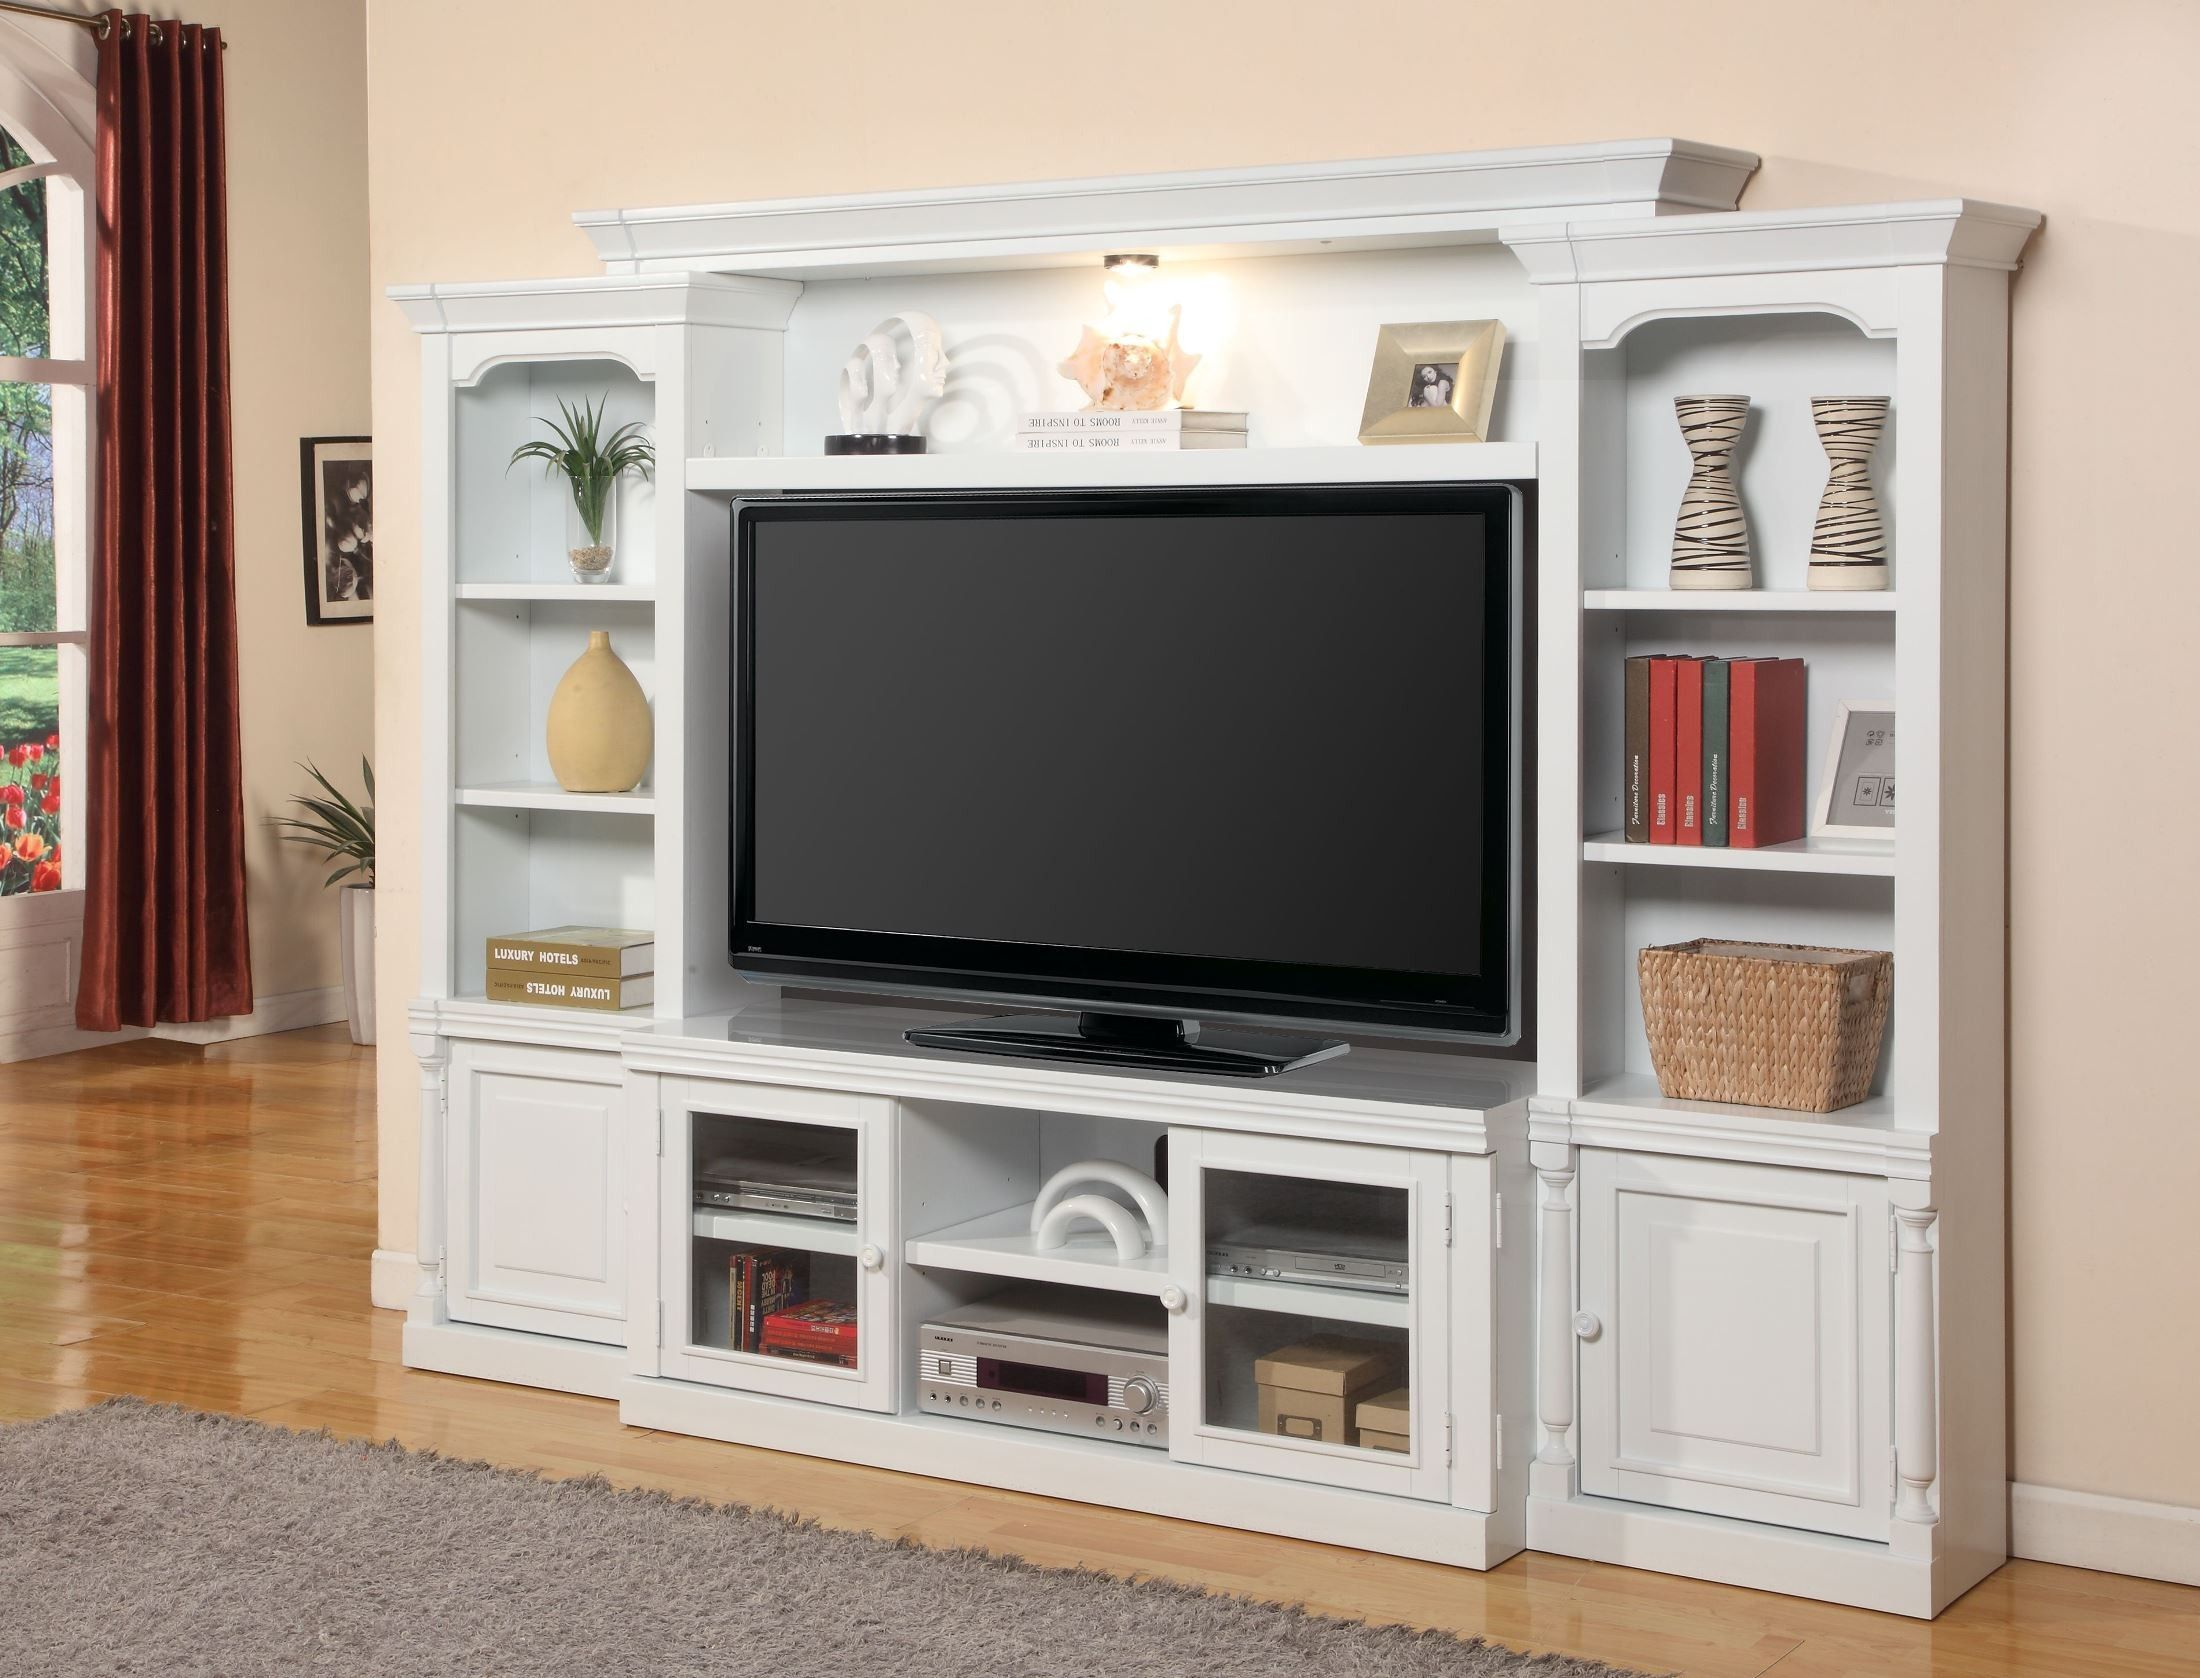 Premier Alpine Stationary Wall Unit | Furniture | Pinterest ...